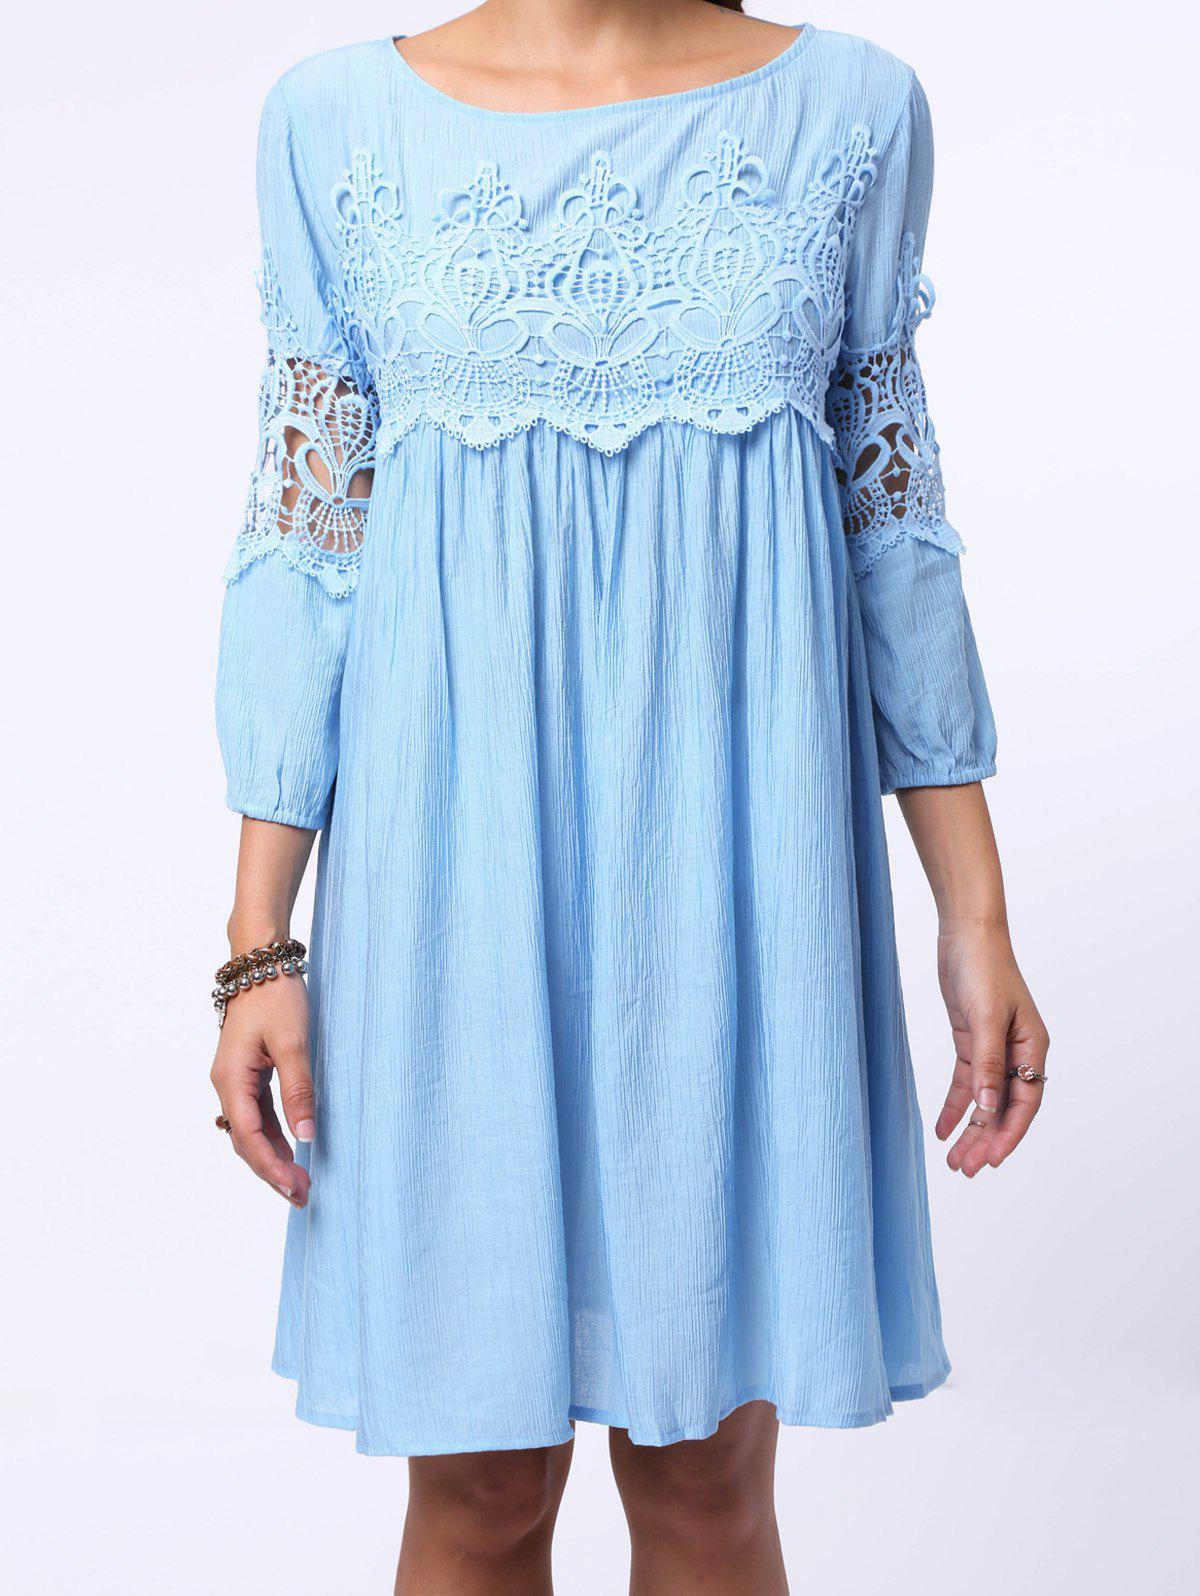 Chic Round Neck 3/4 Sleeve Pure Color Cut Out Women's Dress - LIGHT BLUE L